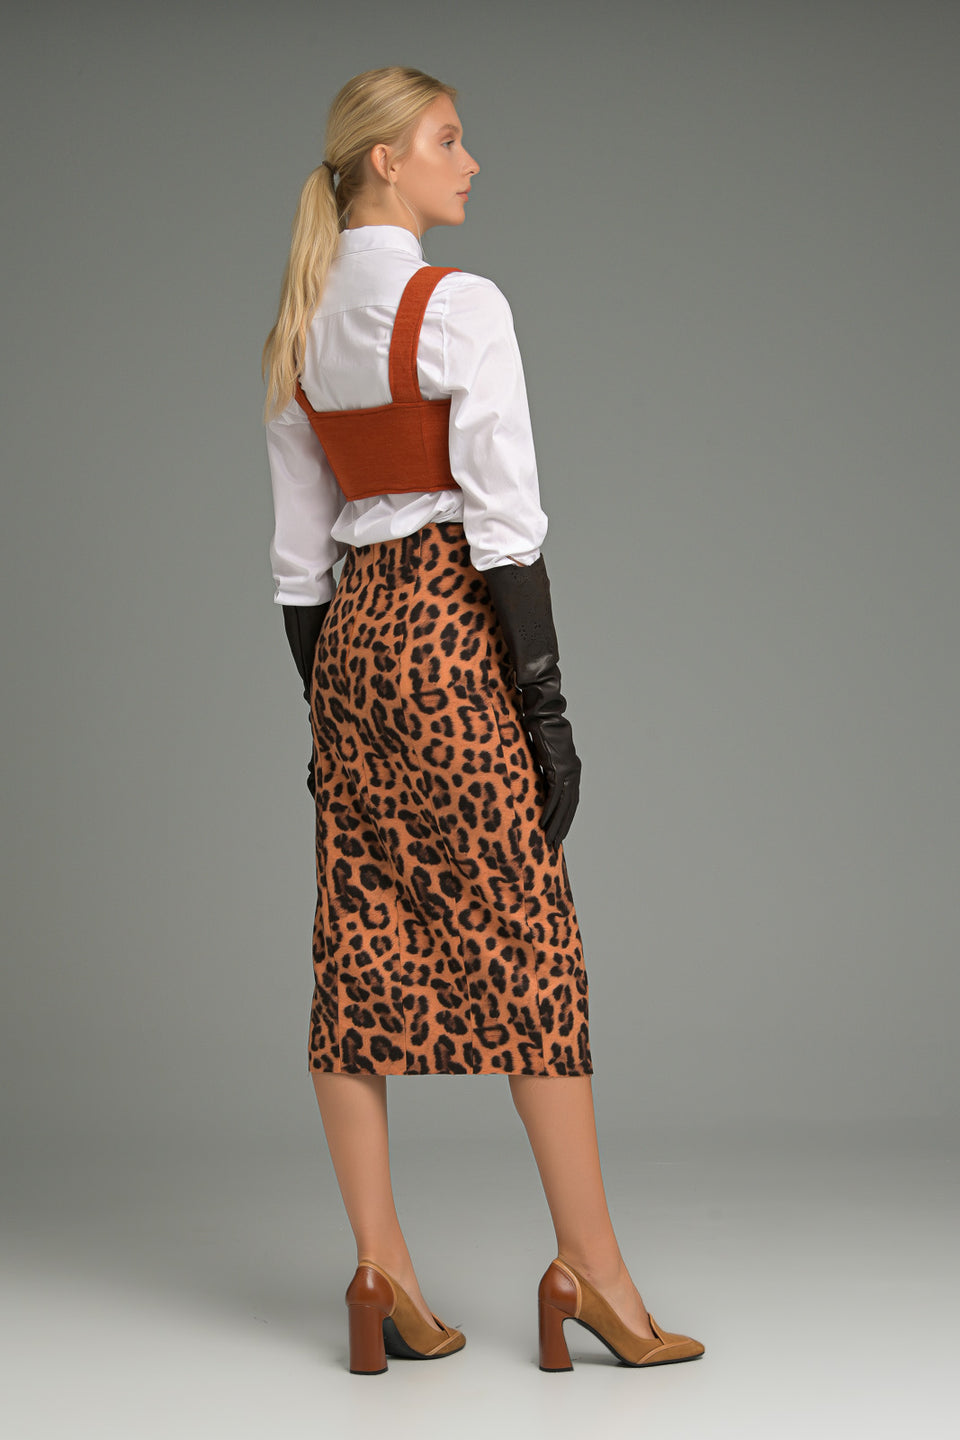 MIDI SKIRT WITH SPLITS IN LEOPARD PRINT MIDI SKIRT WITH SPLITS IN LEOPARD PRINT